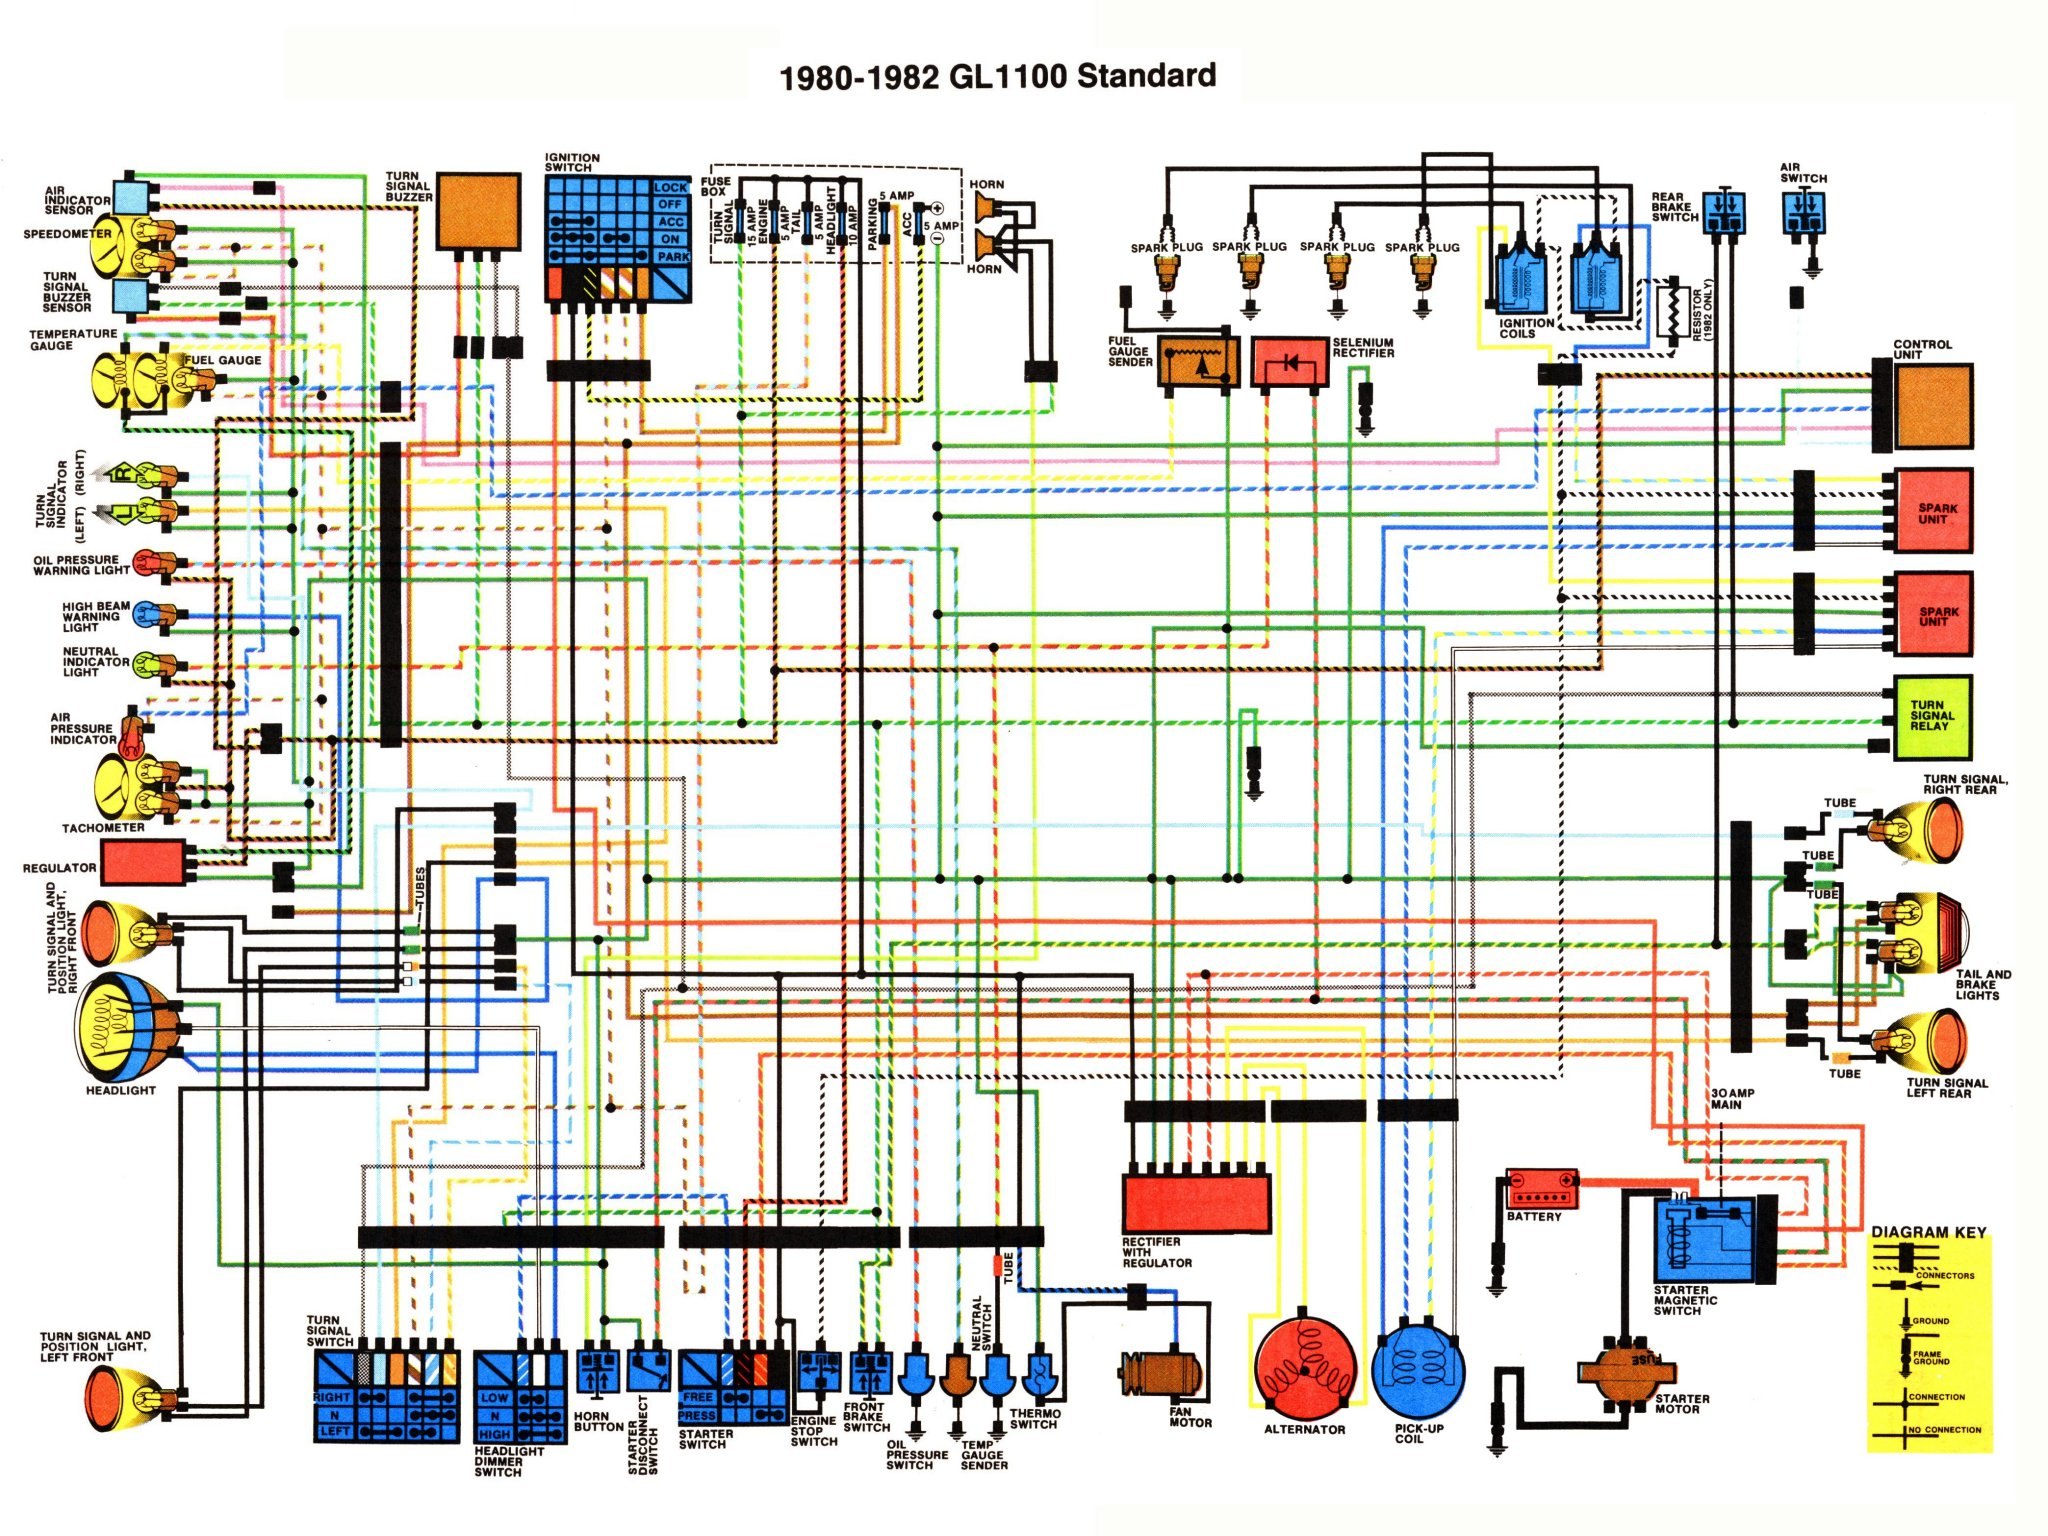 198082 GL1100 Standard Colour Schematic